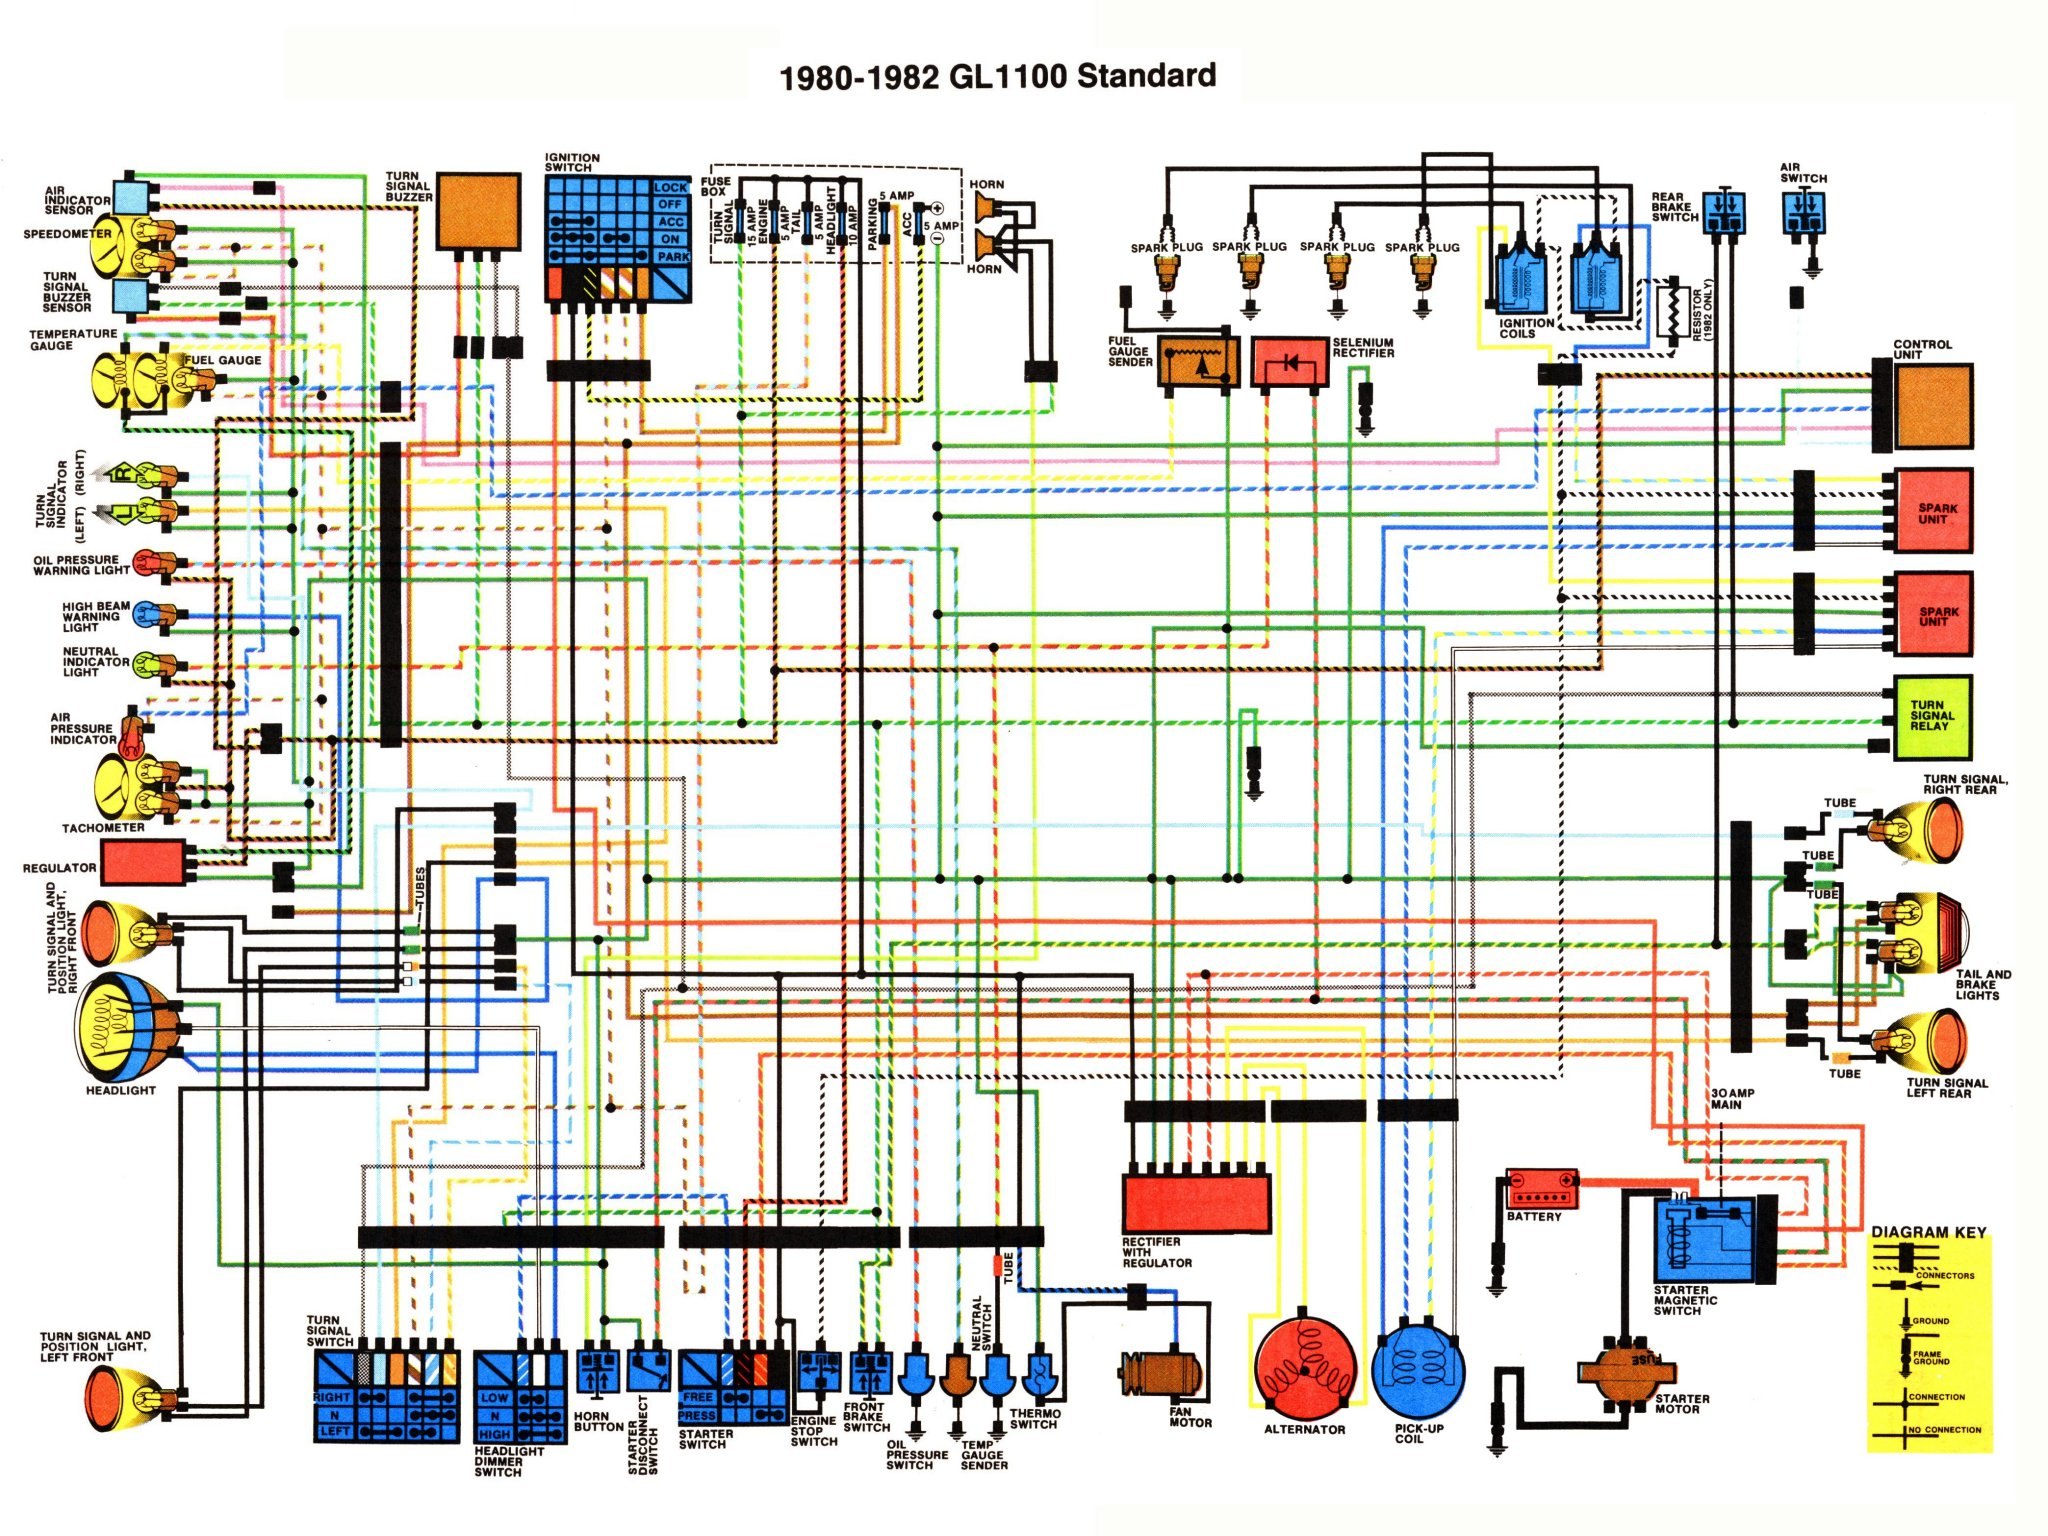 198082 GL1100 Standard Colour Schematic